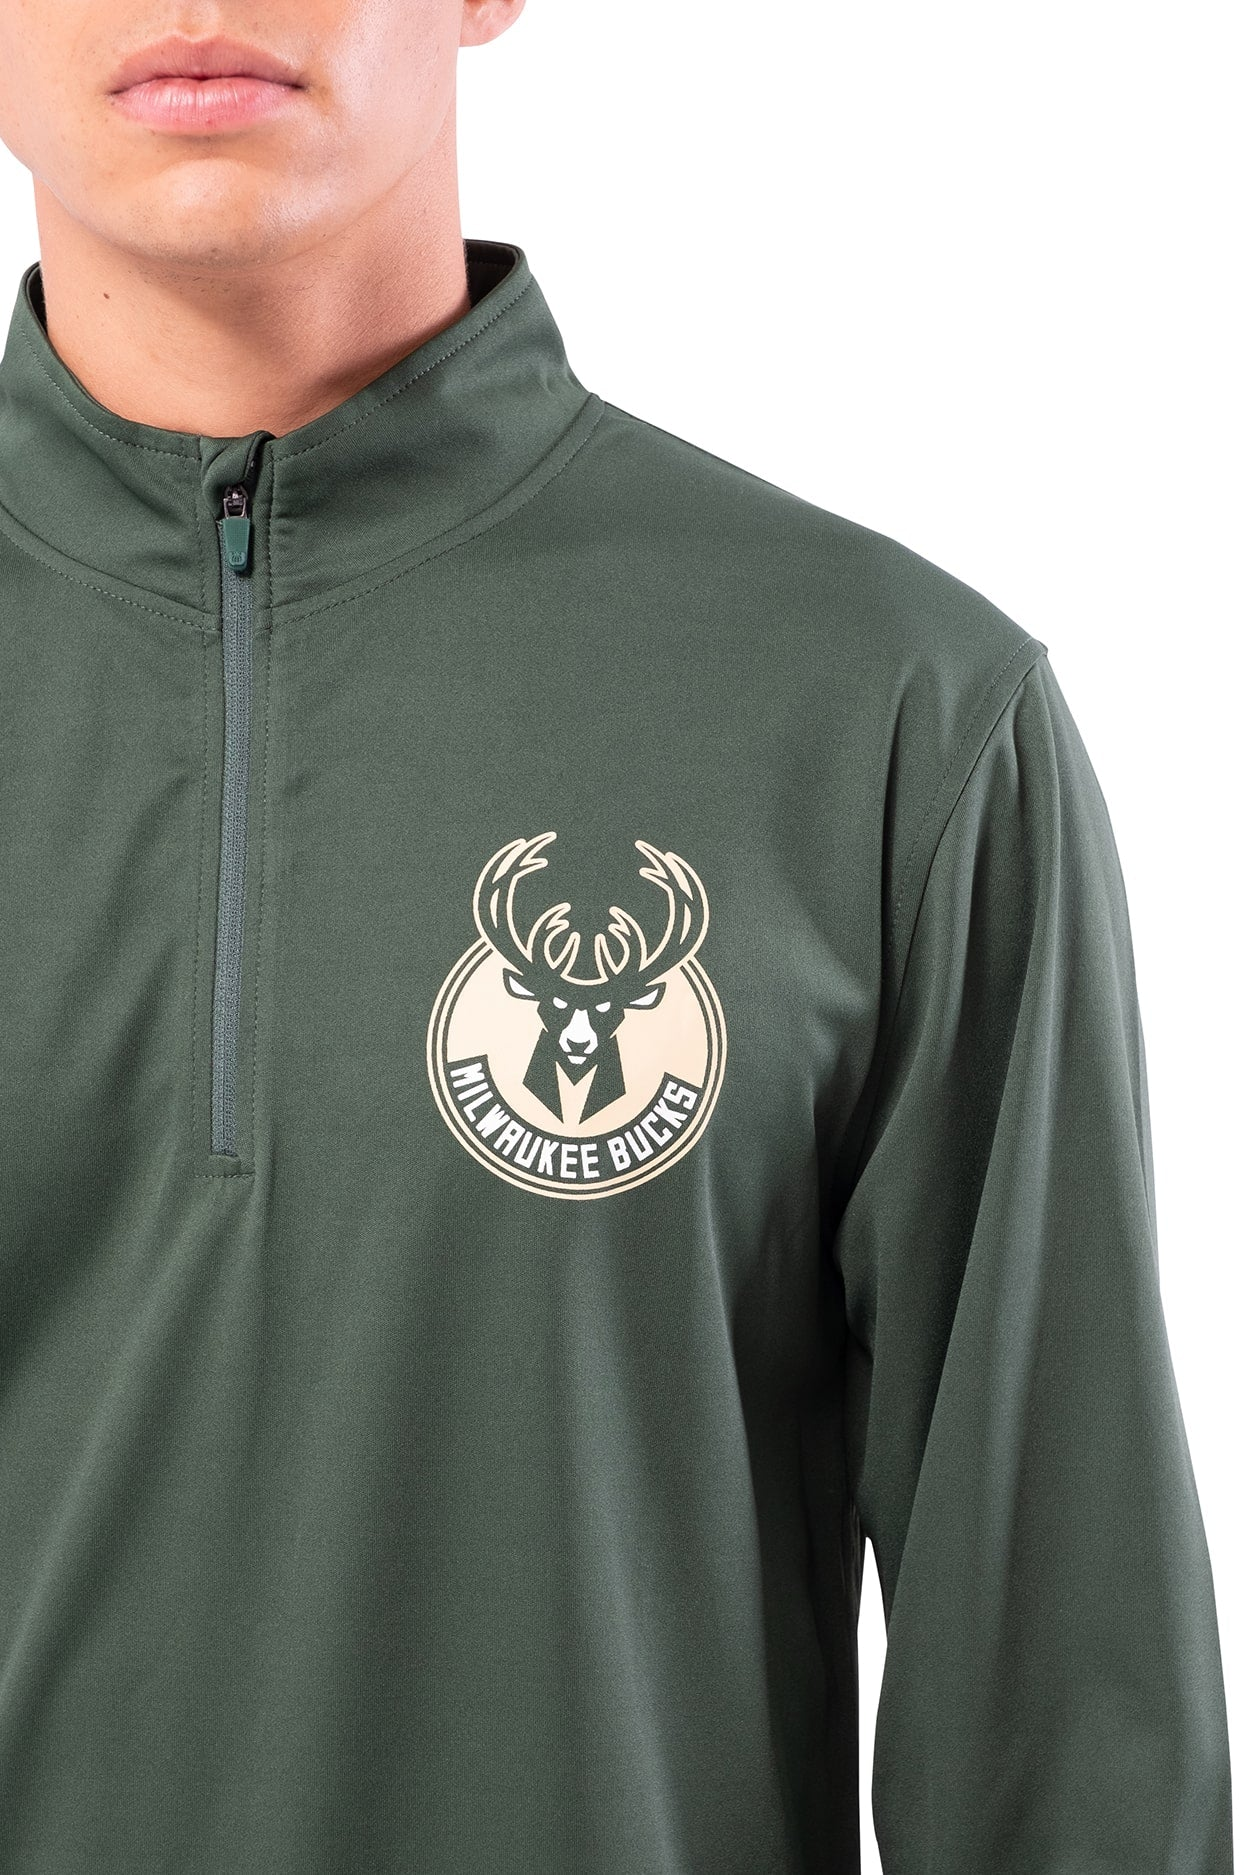 NBA Milwaukee Bucks Men's Quarter Zip Quick Dry Tee|Milwaukee Bucks